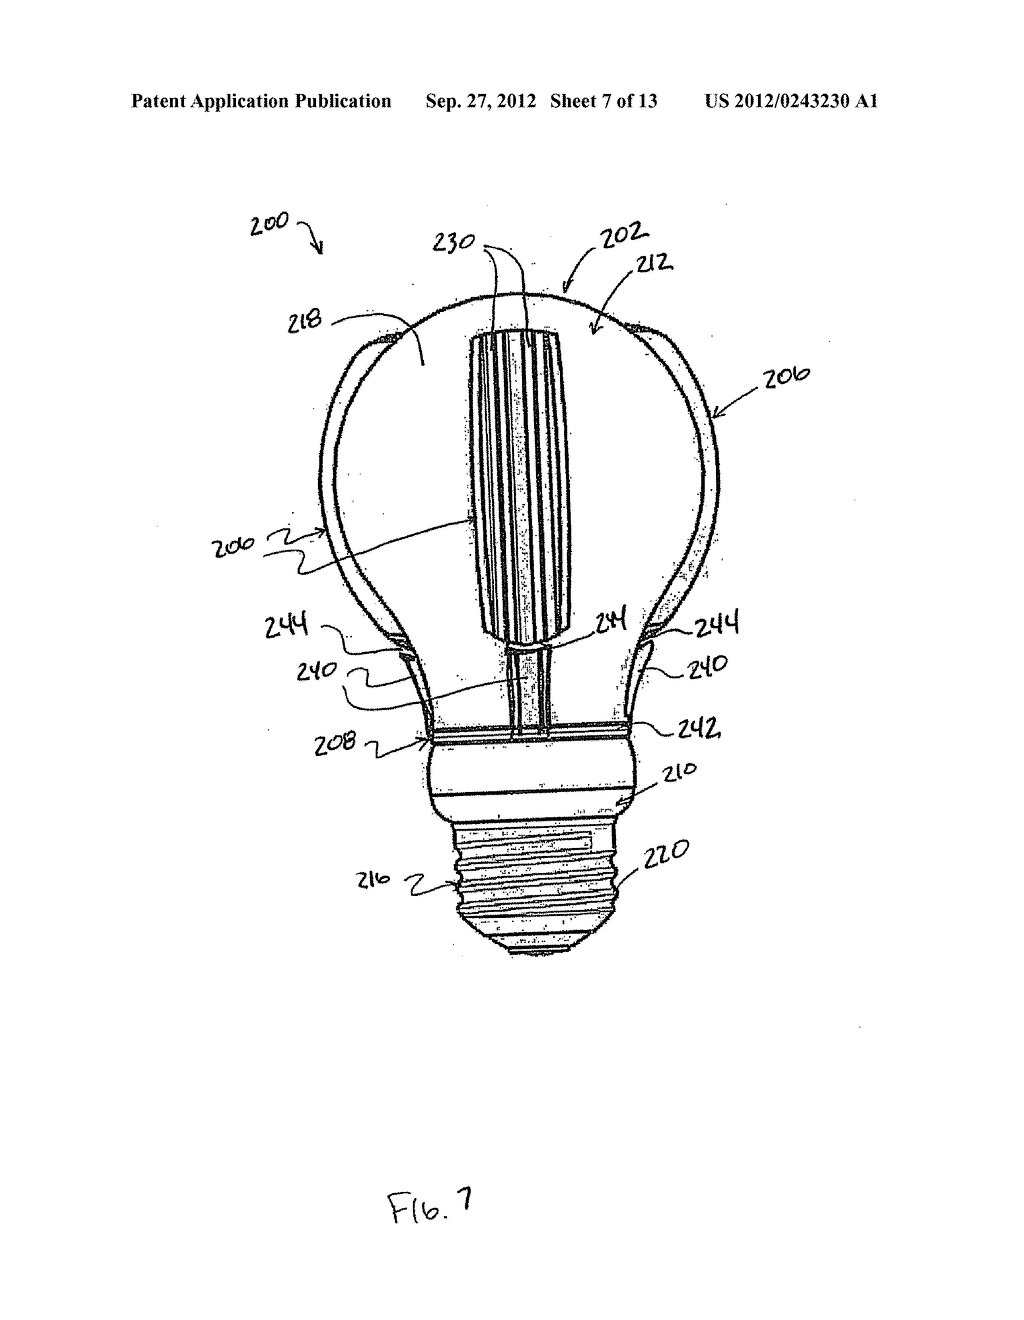 hight resolution of heat transfer assembly for led based light bulb or lamp device diagram schematic and image 08